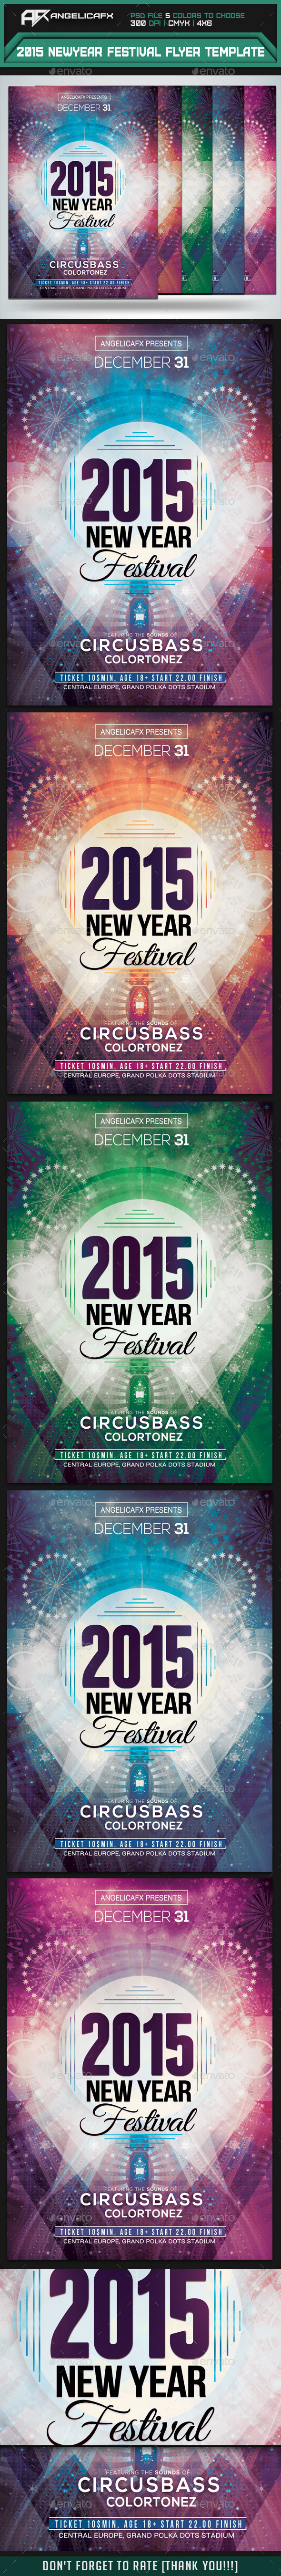 GraphicRiver 2015 New Year Festival Flyer Template 9722601